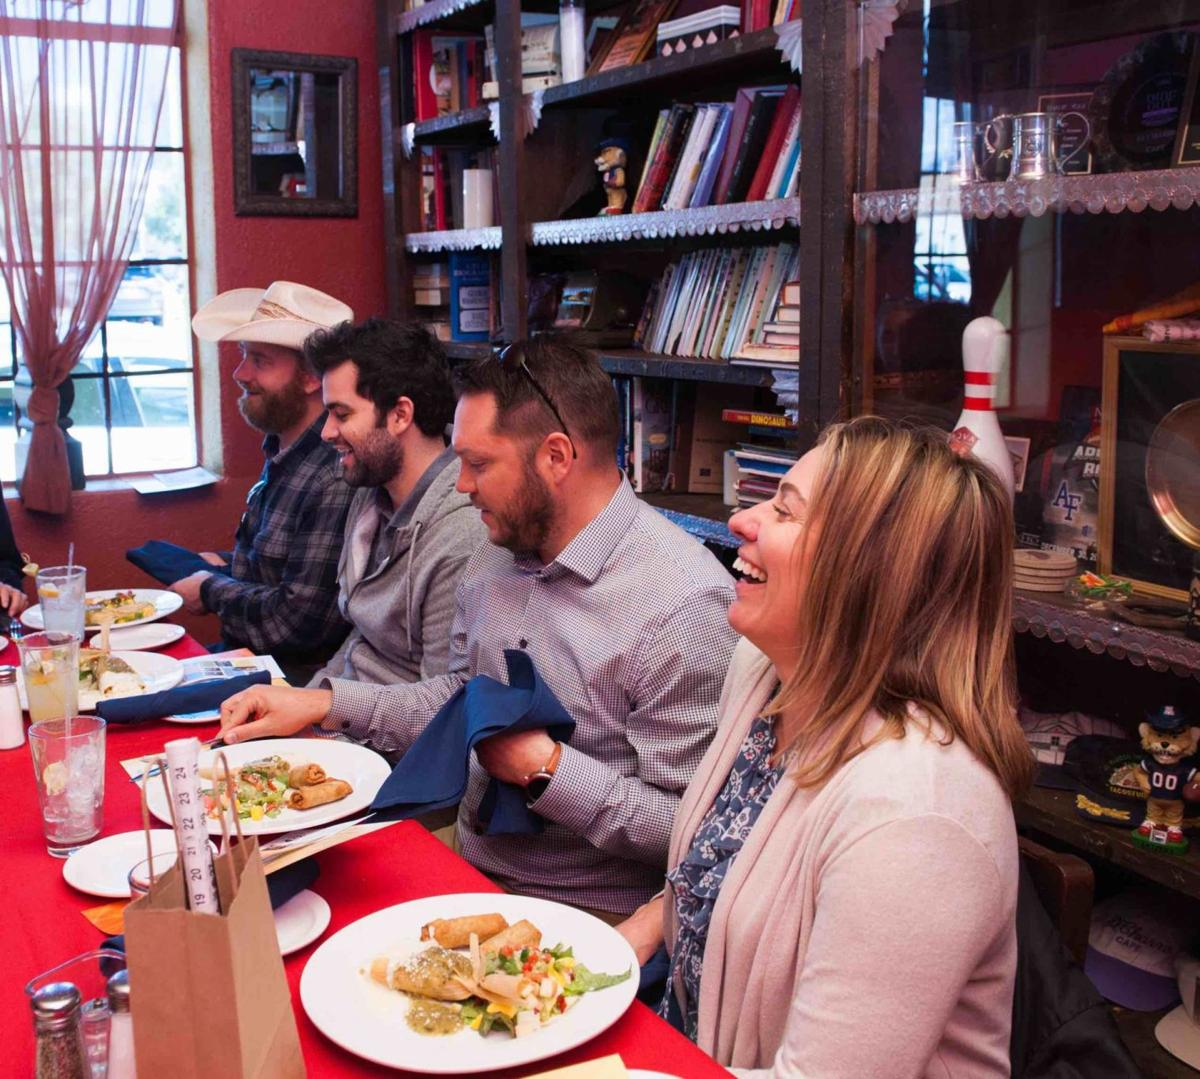 The Presidio District Experience: A Food Heritage and History Tour